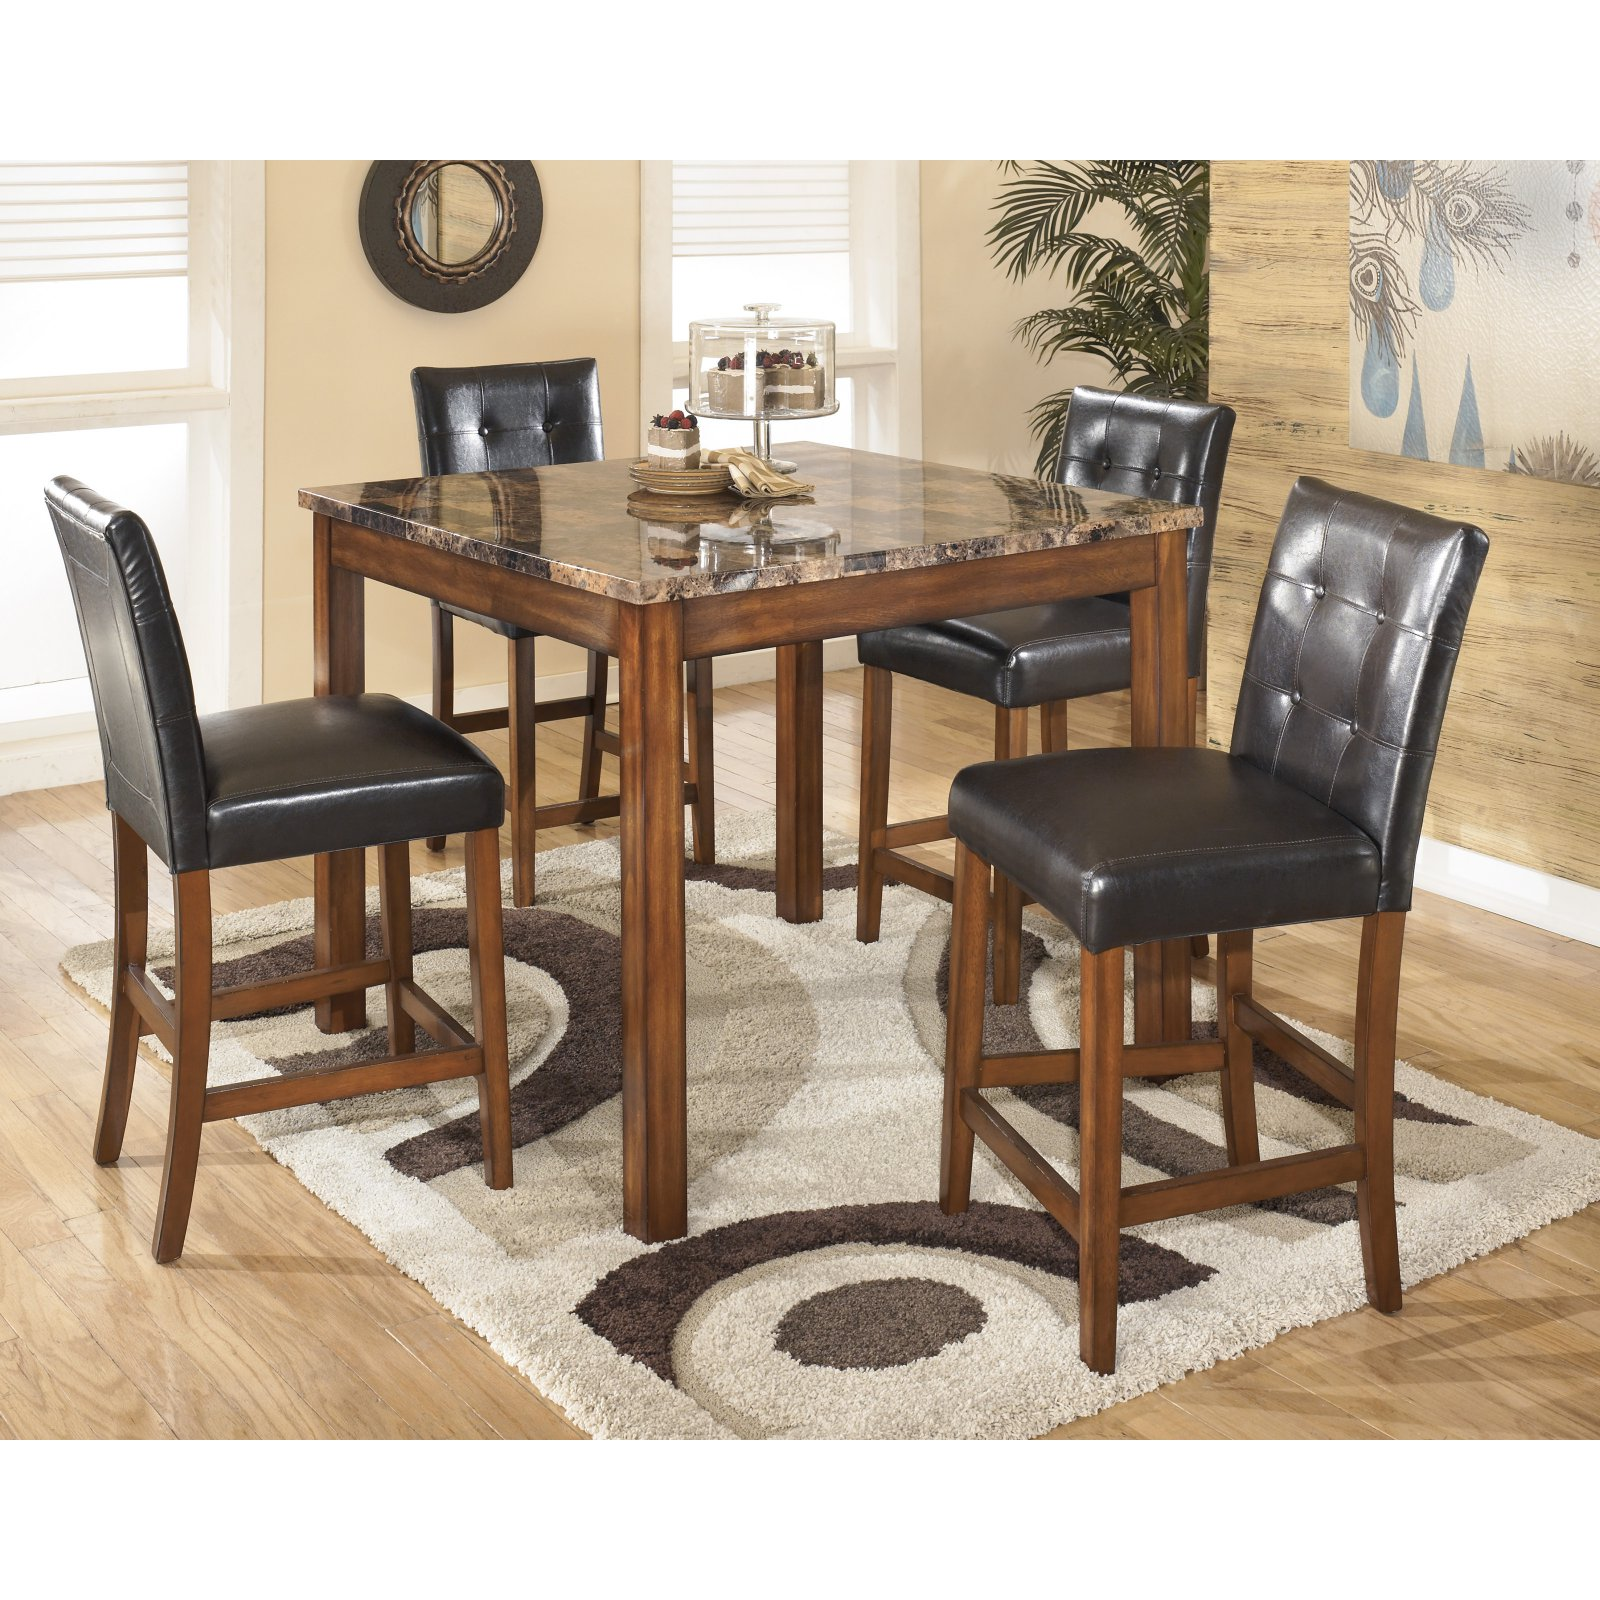 Ashley Theo Counter Height Dining Room Table and Bar Stools (Set of 5), Warm Brown